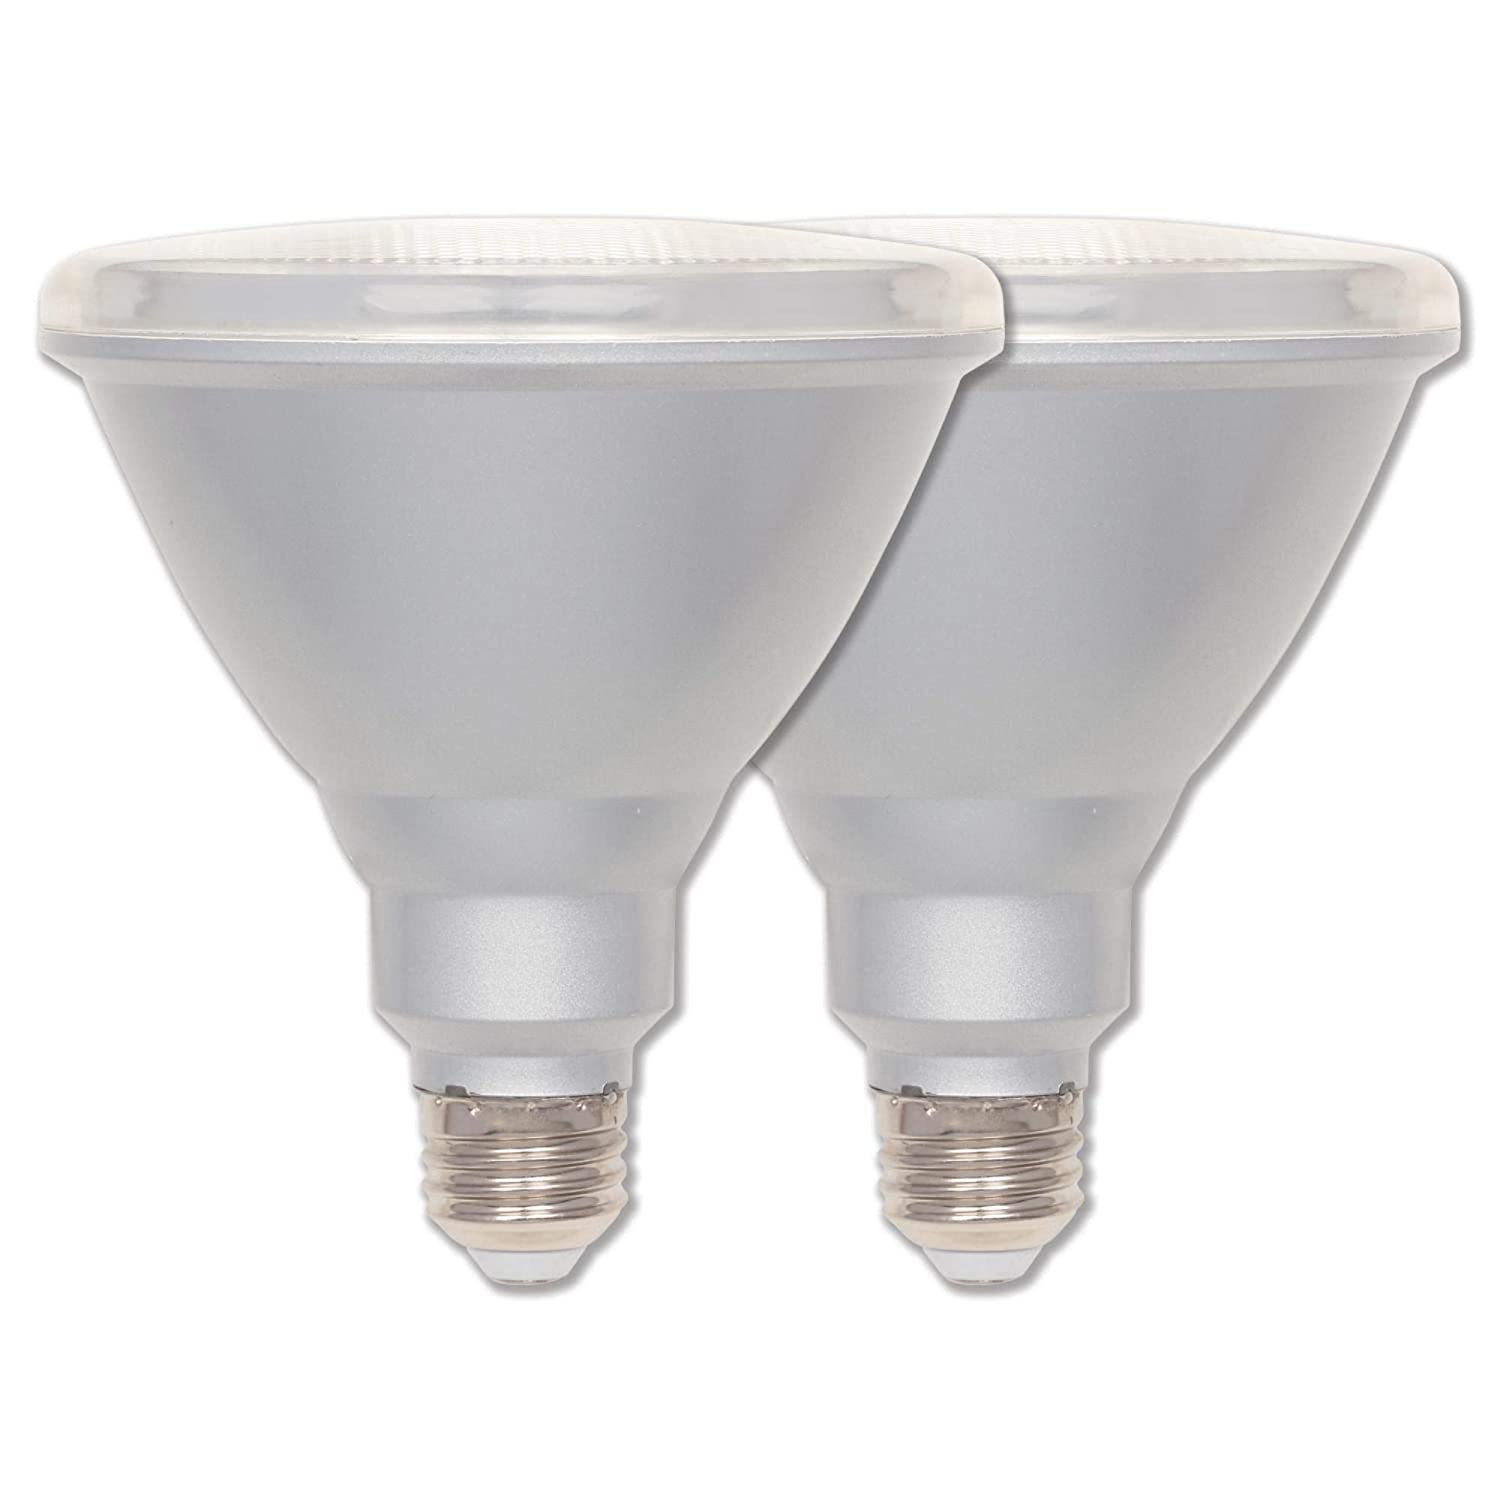 Westinghouse Lighting 5311400 15 (90-Watt Equivalent) PAR38 Flood Dimmable Bright White Indoor/Outdoor Energy Star, Medium Base, 2 Pack LED Light Bulb, Clear, 2 Piece